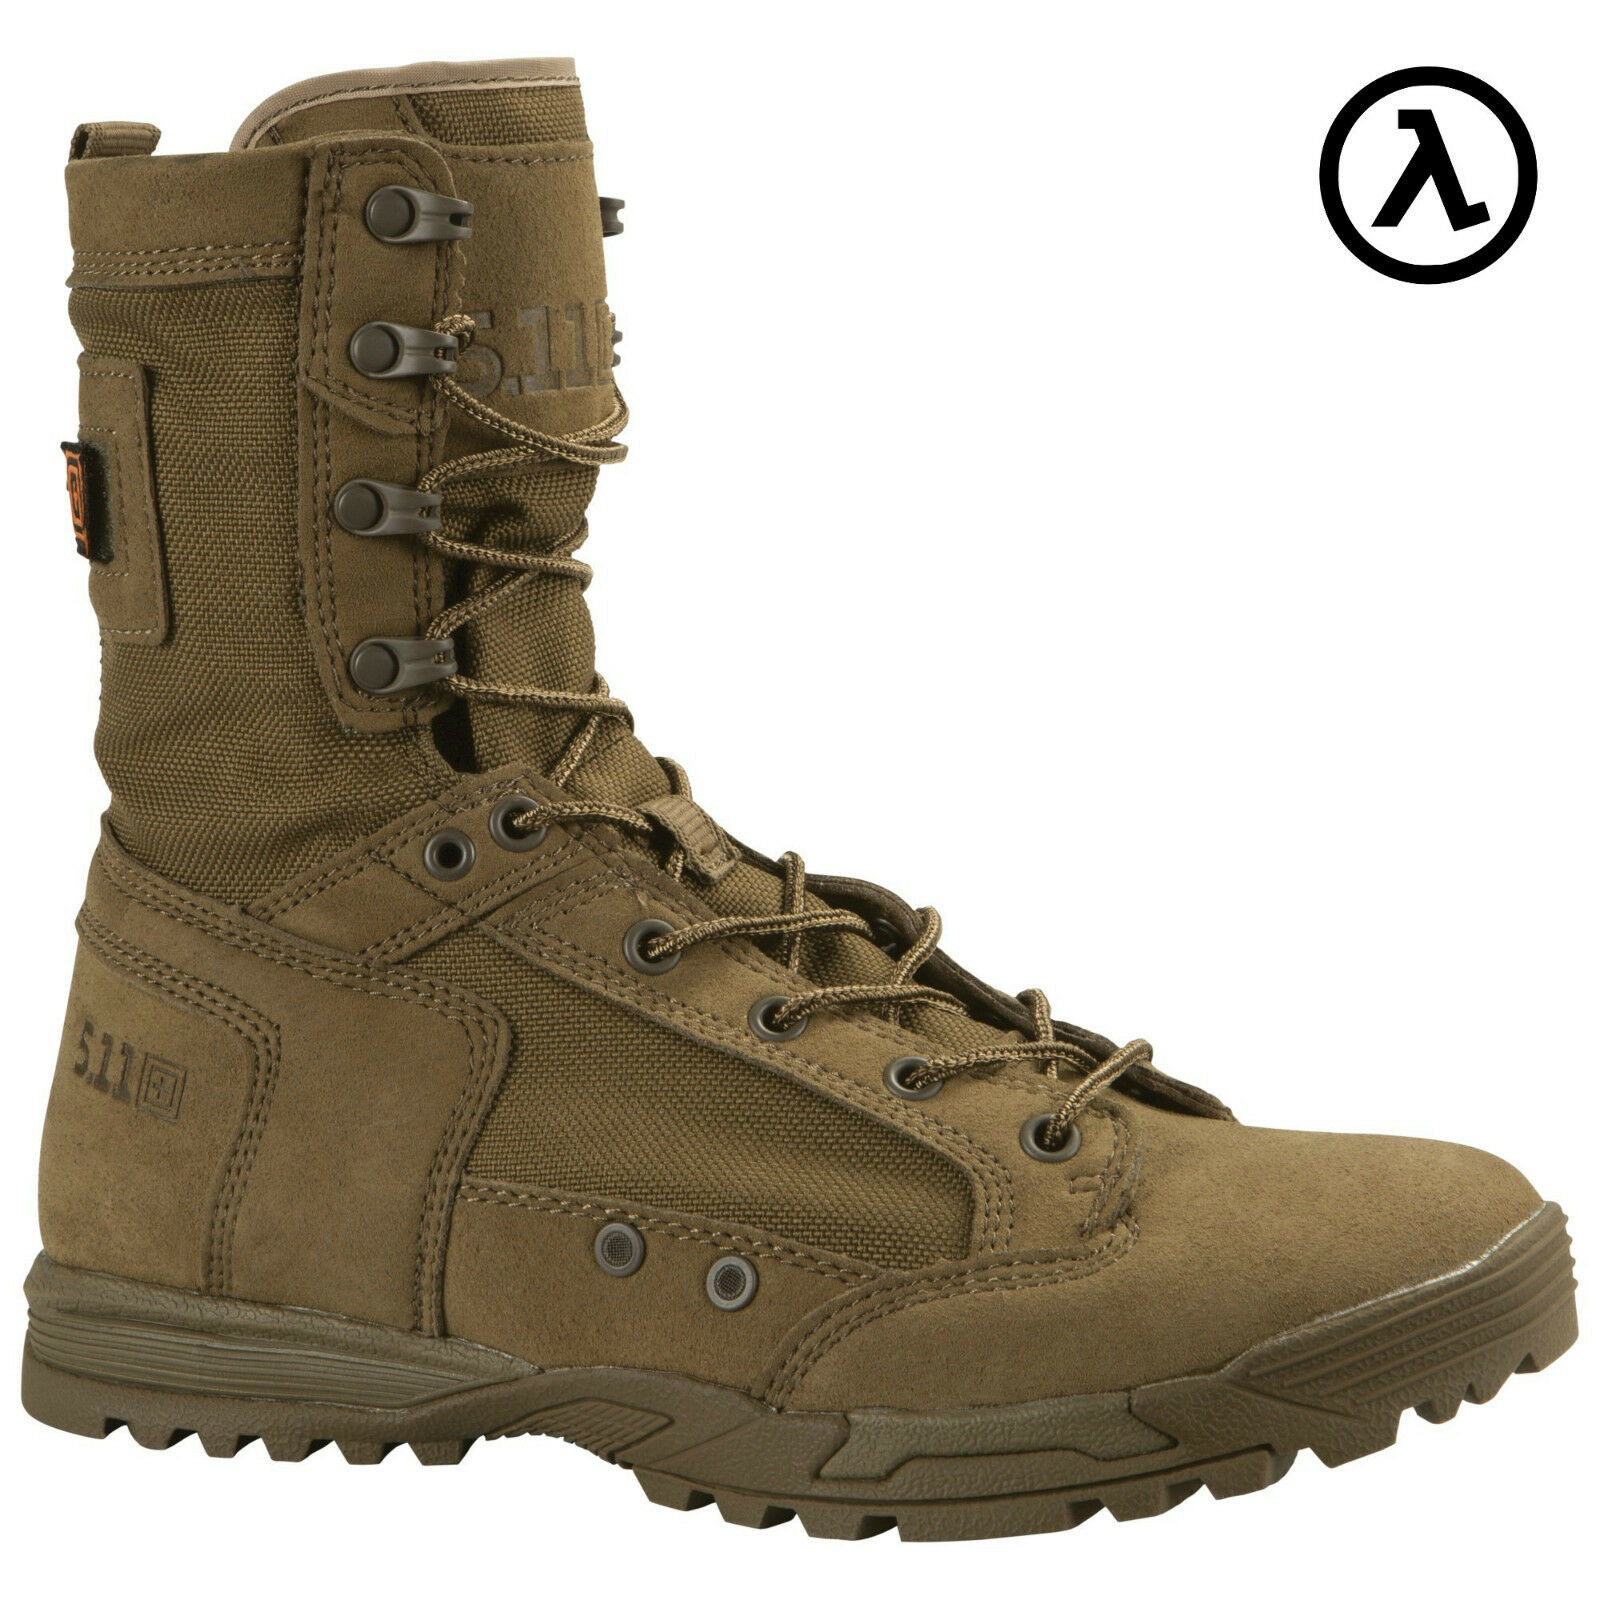 5.11 TACTICAL SKYWEIGHT RAPIDDRY BOOTS / COYOTE 12322 * ALL SIZES